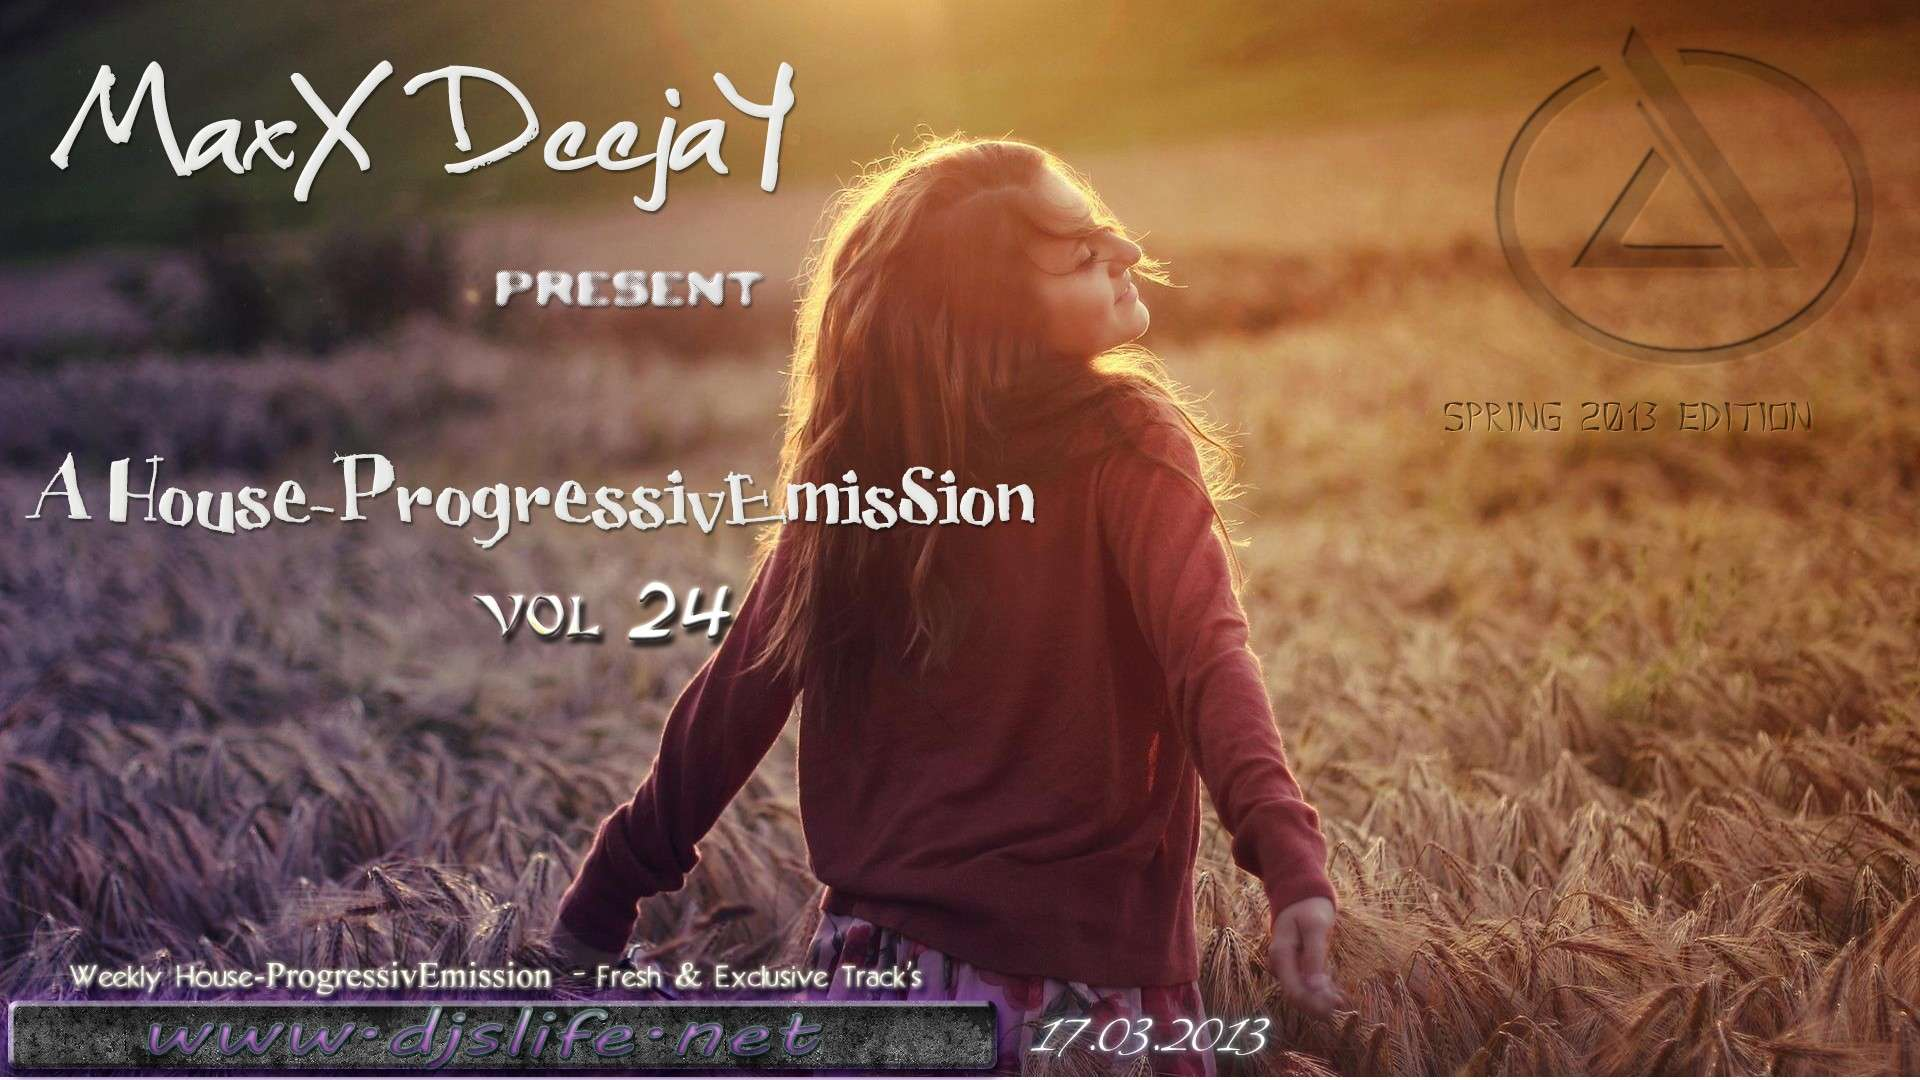 MaxX DeejaY - A House-ProgressivEmisSion vol.24 [17.03.2013]